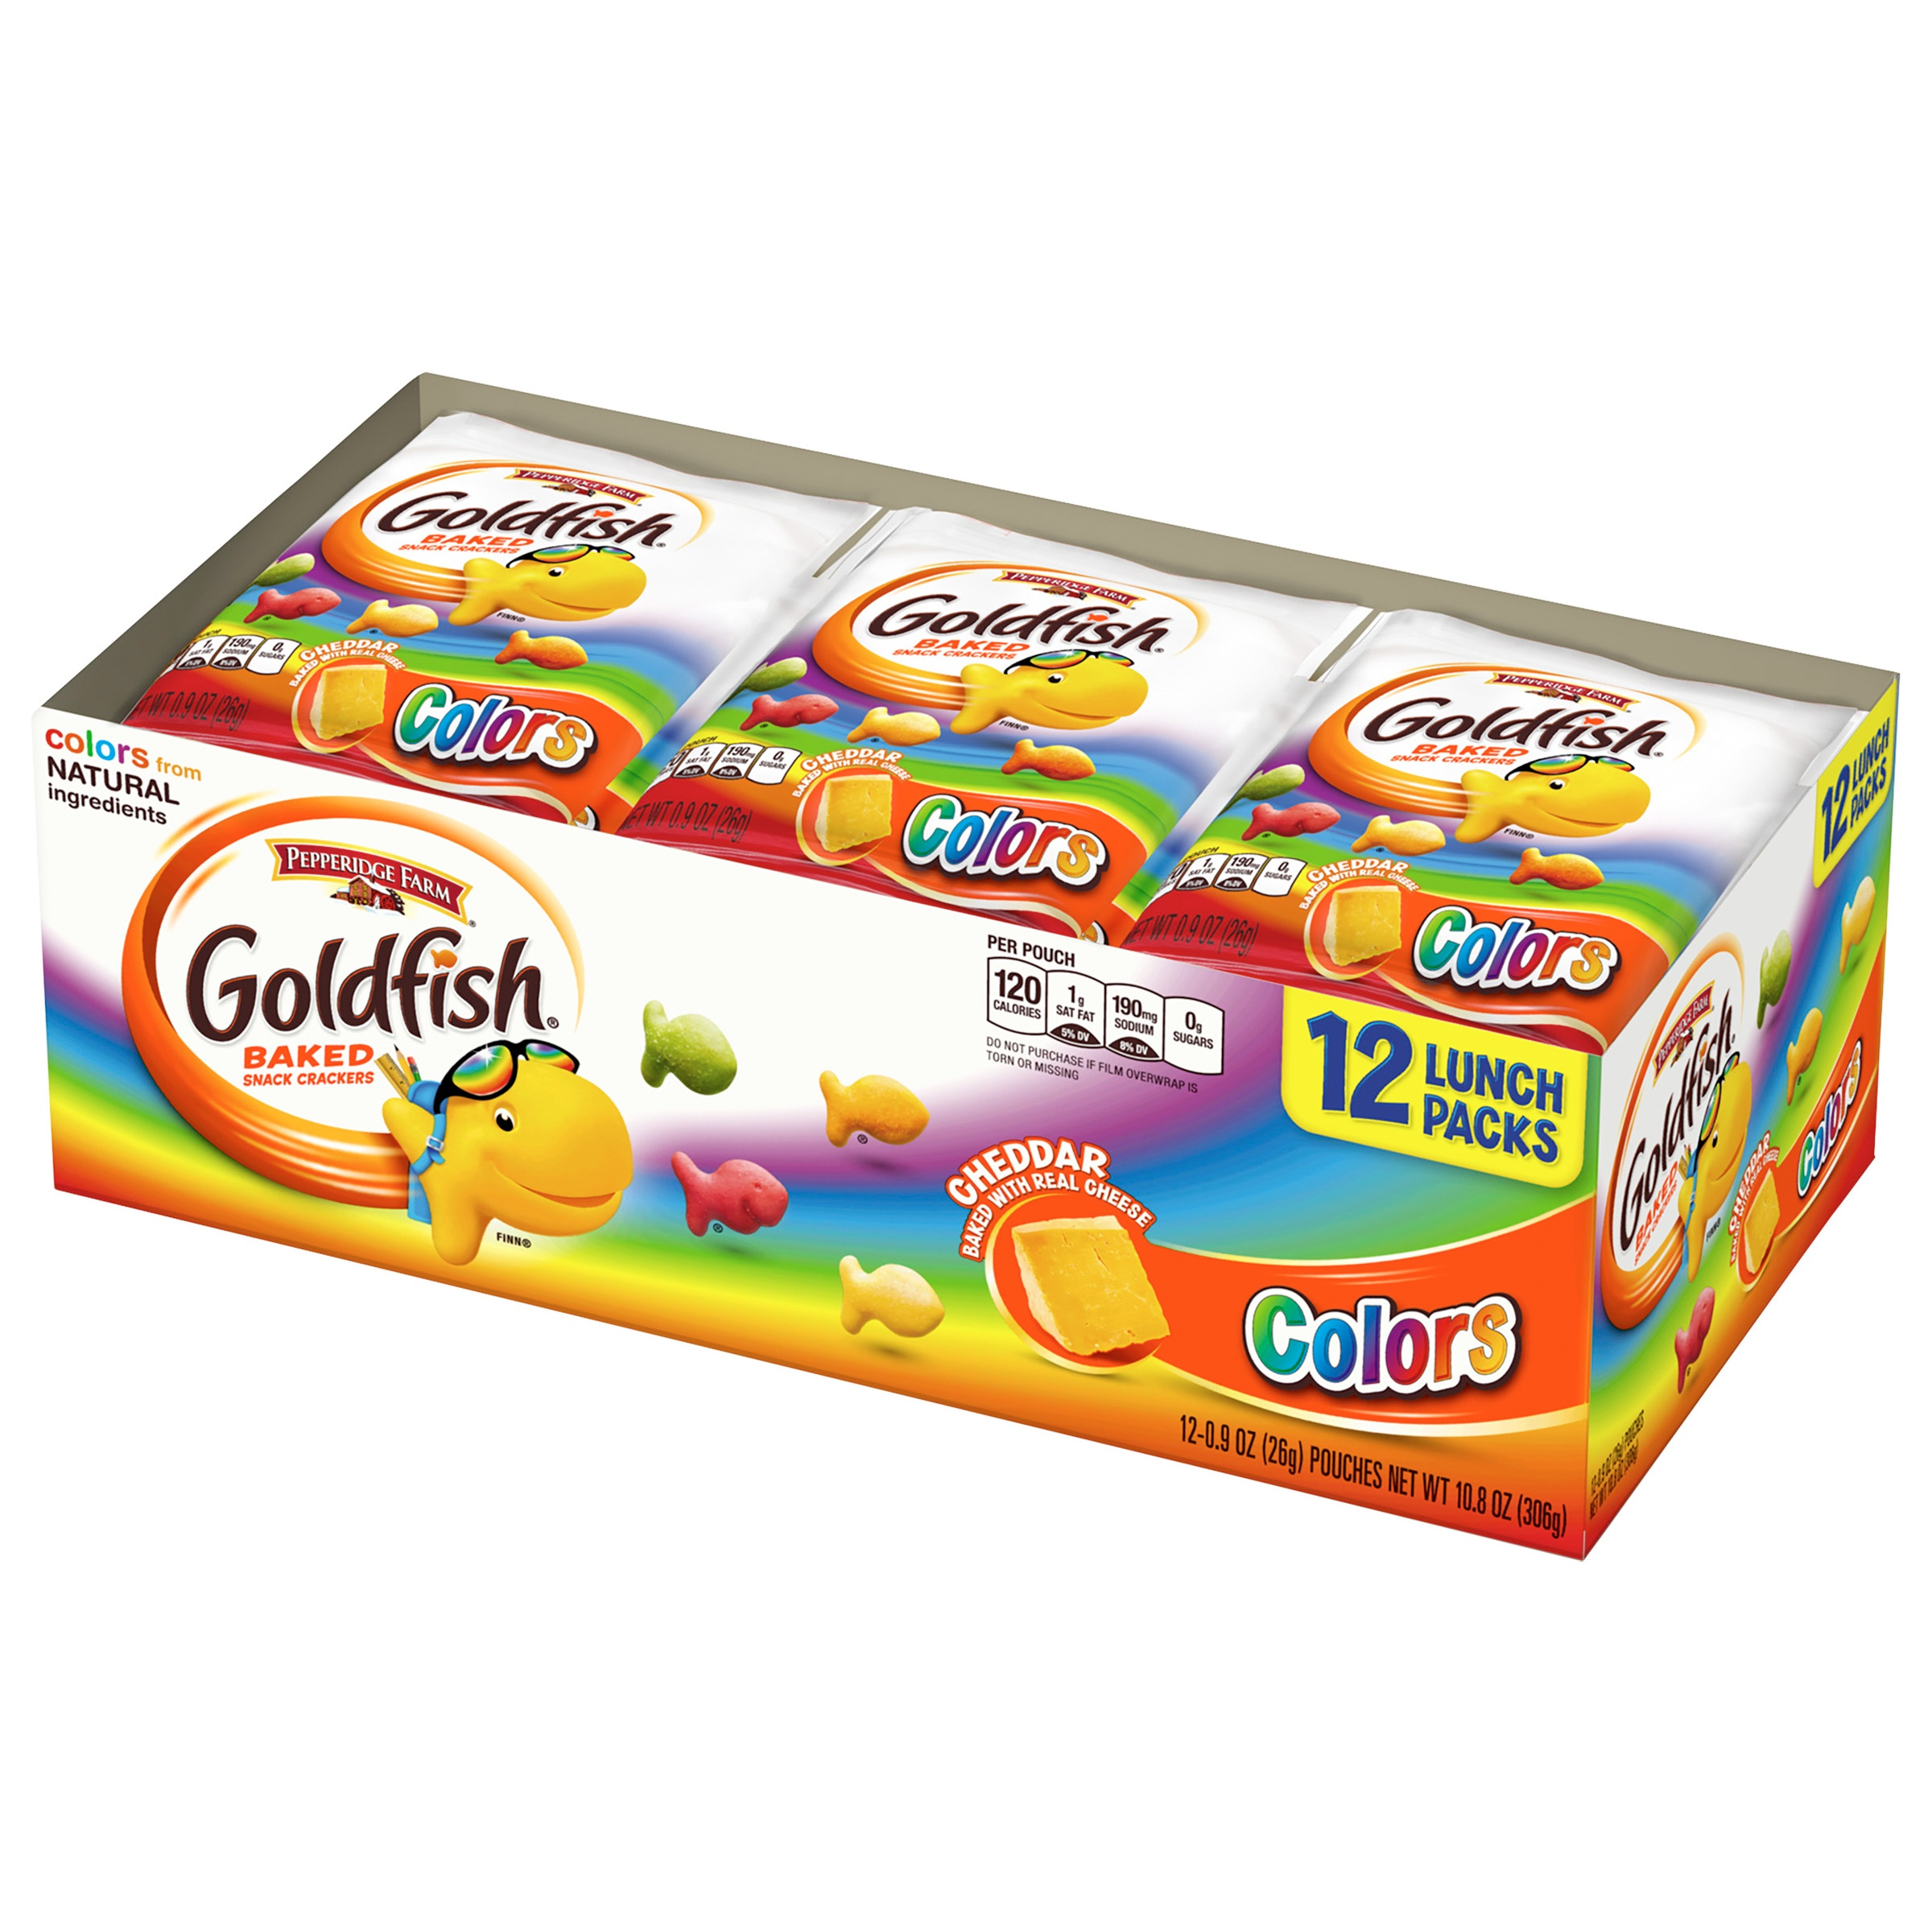 Pepperidge Farm® Goldfish® Baked Cheddar Colors Snack Crackers 12-0.9 oz. Pouches